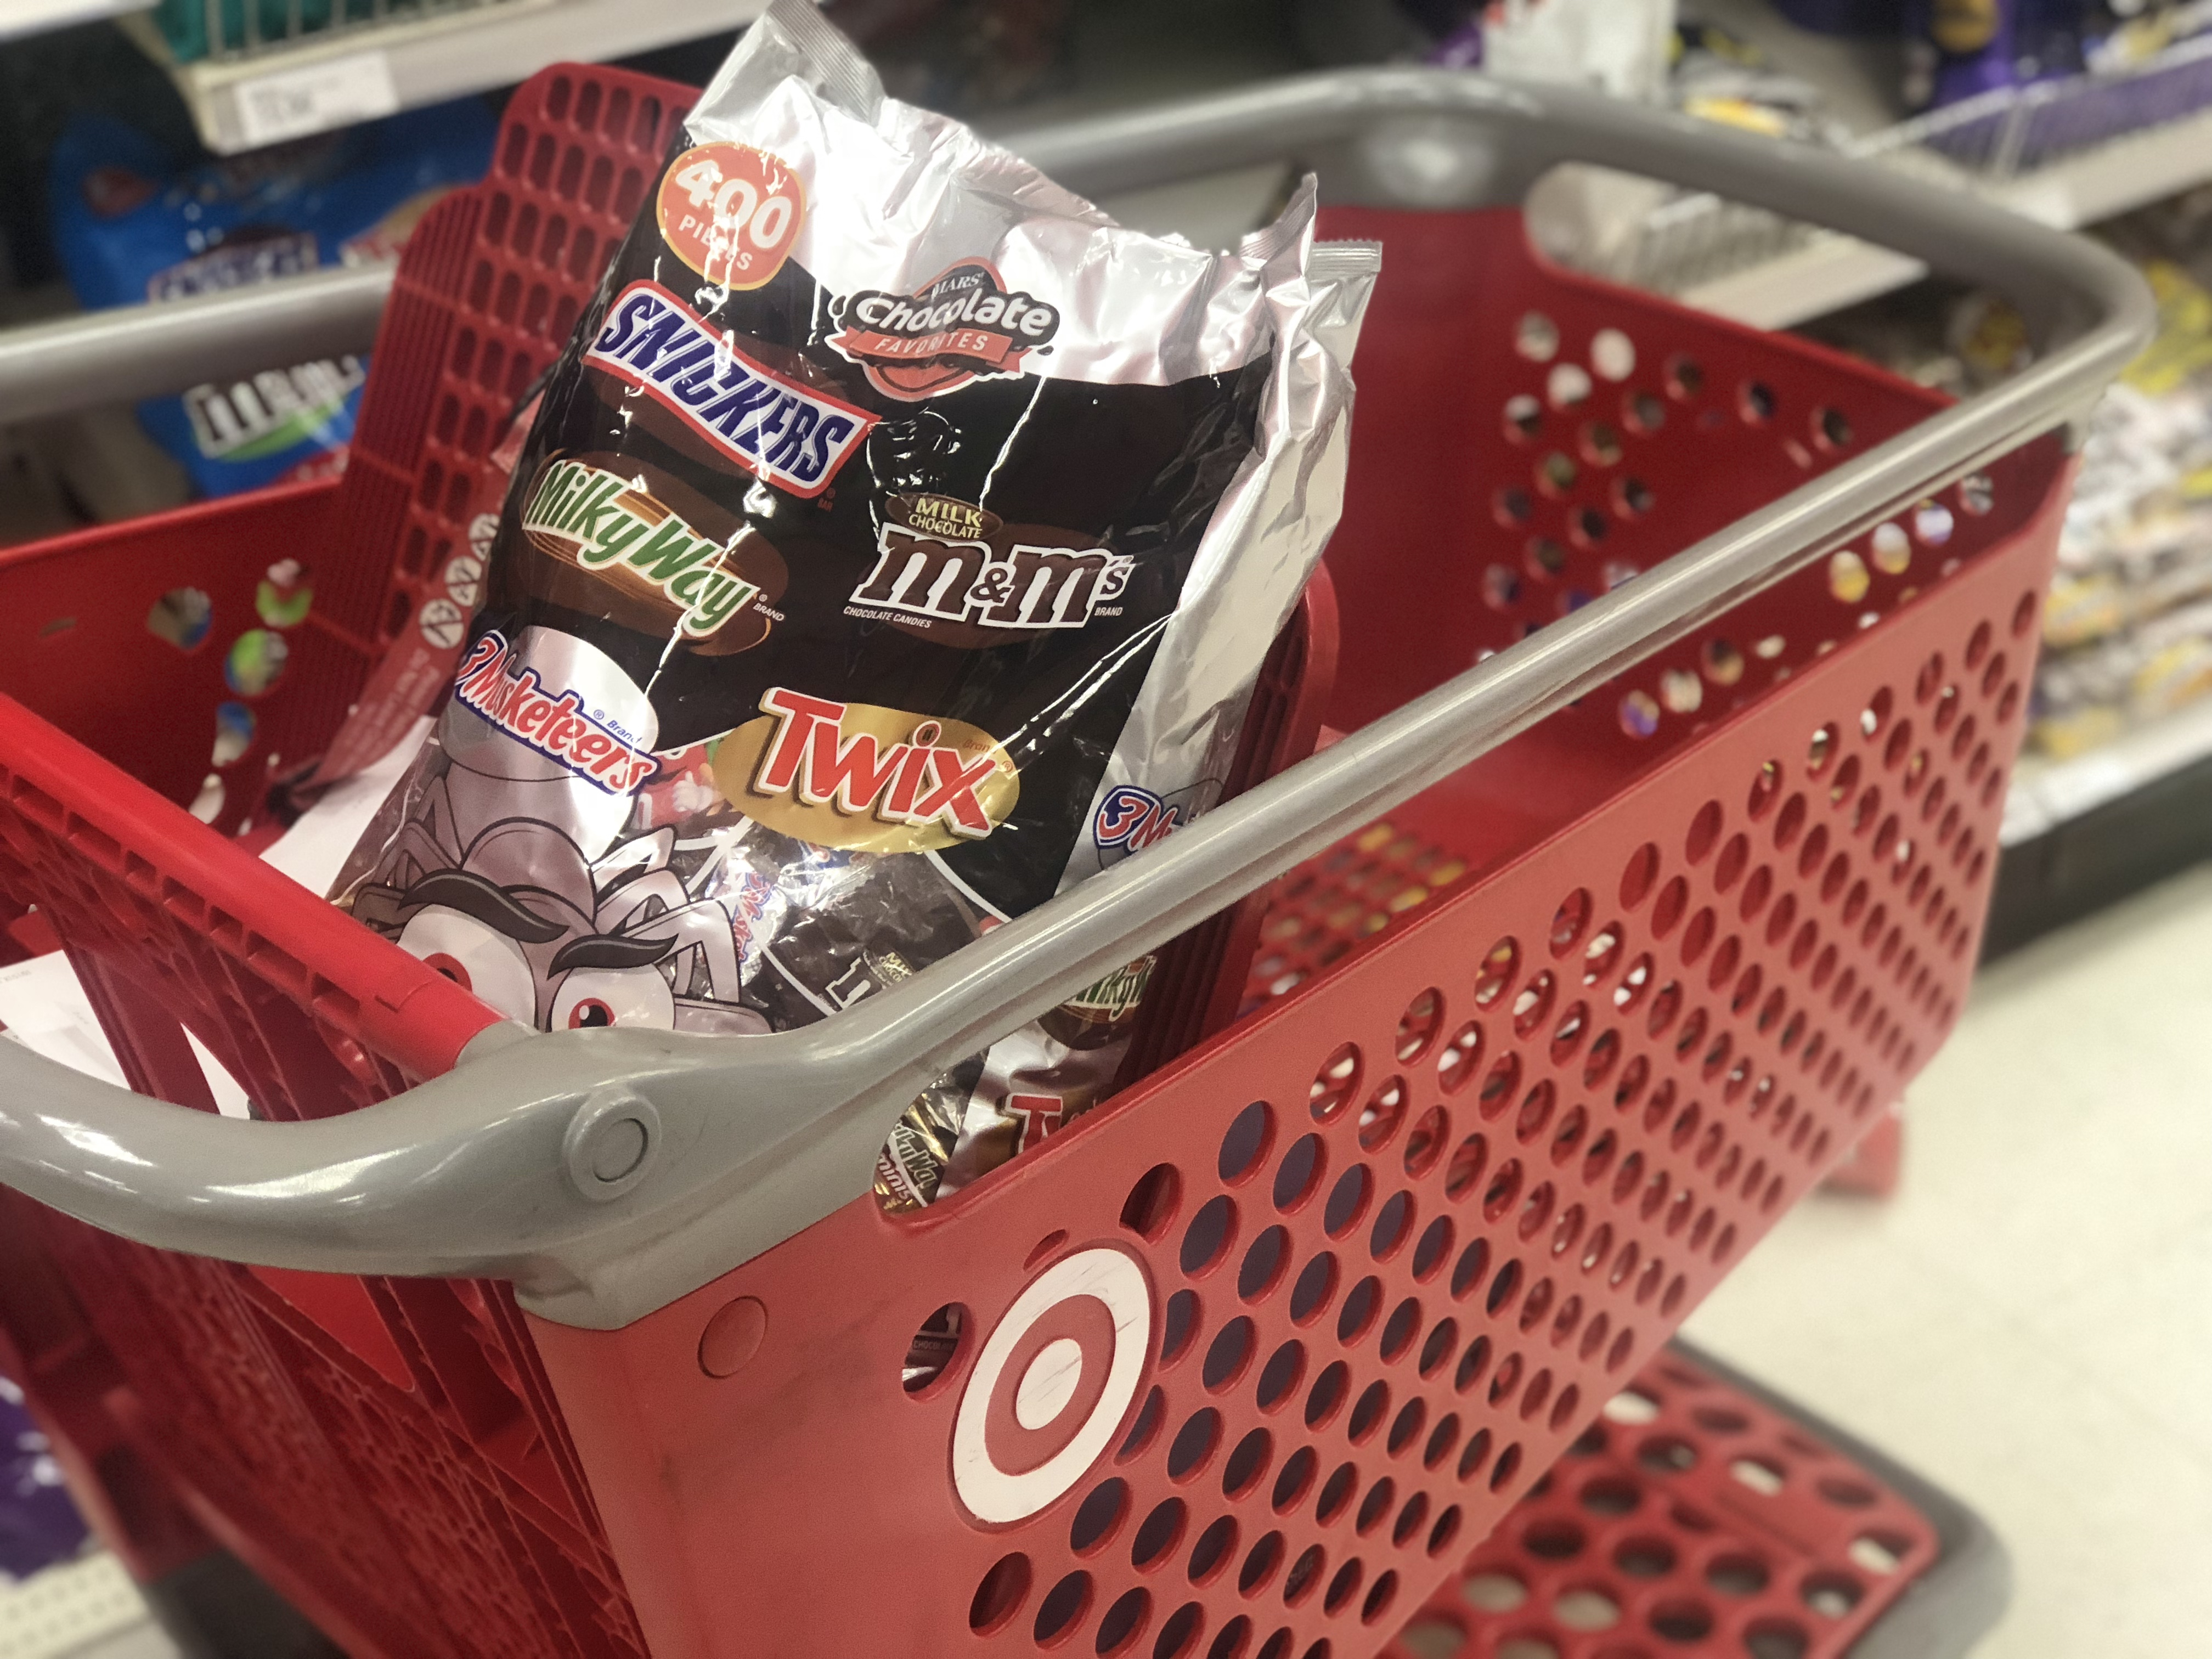 target & walgreens deals, coupons, & freebies 10-17-2018 – Mars Halloween candy at Target